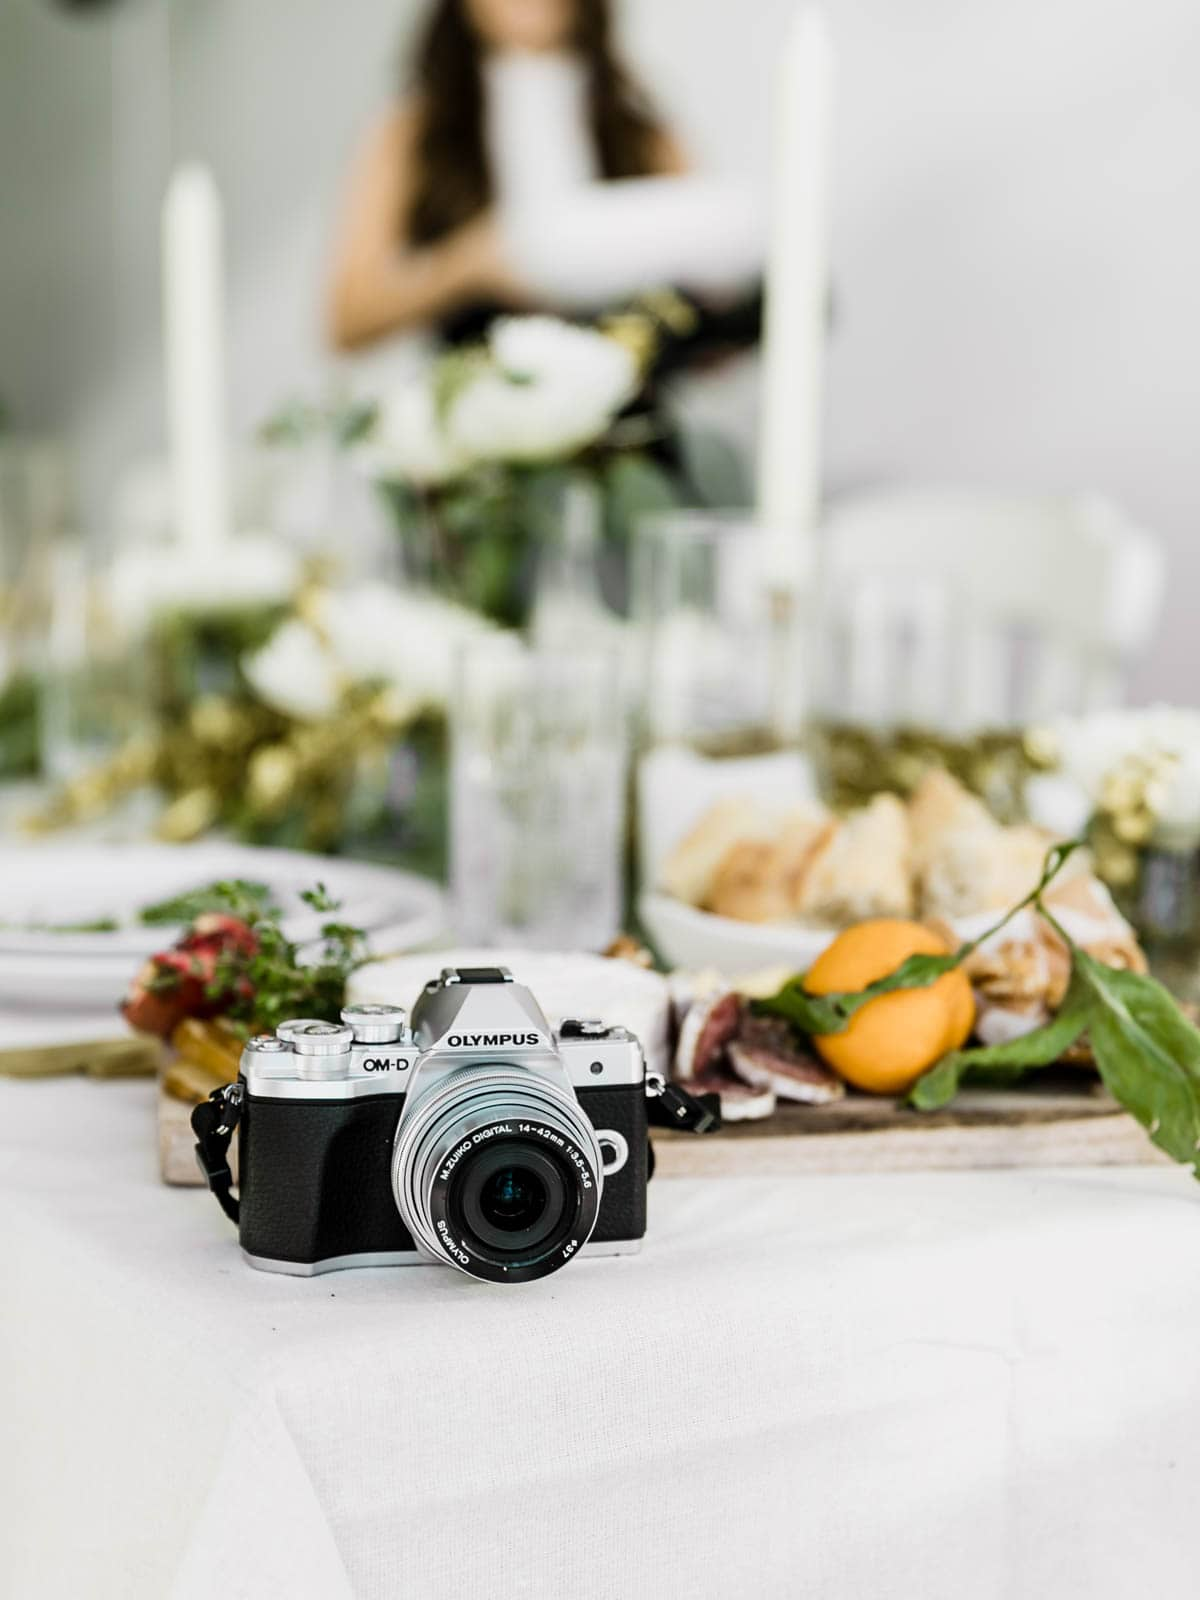 If you didn't Insta it, did it even happen? Here are my top tips for throwing an Instagram Worthy Dinner Party that will have your guests snapping errything